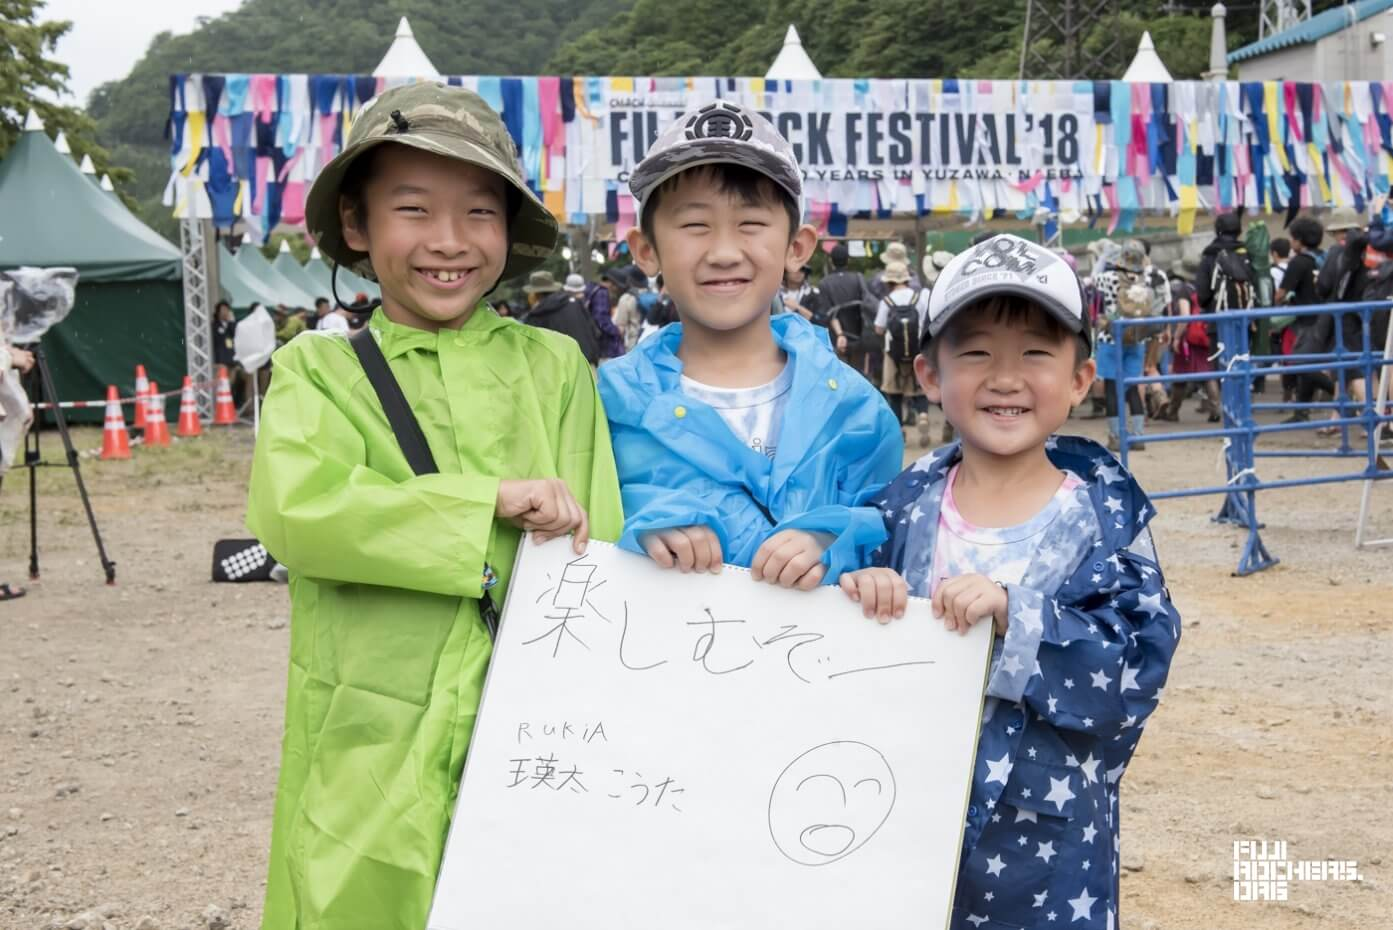 Message for Fujirock! 2018 #071